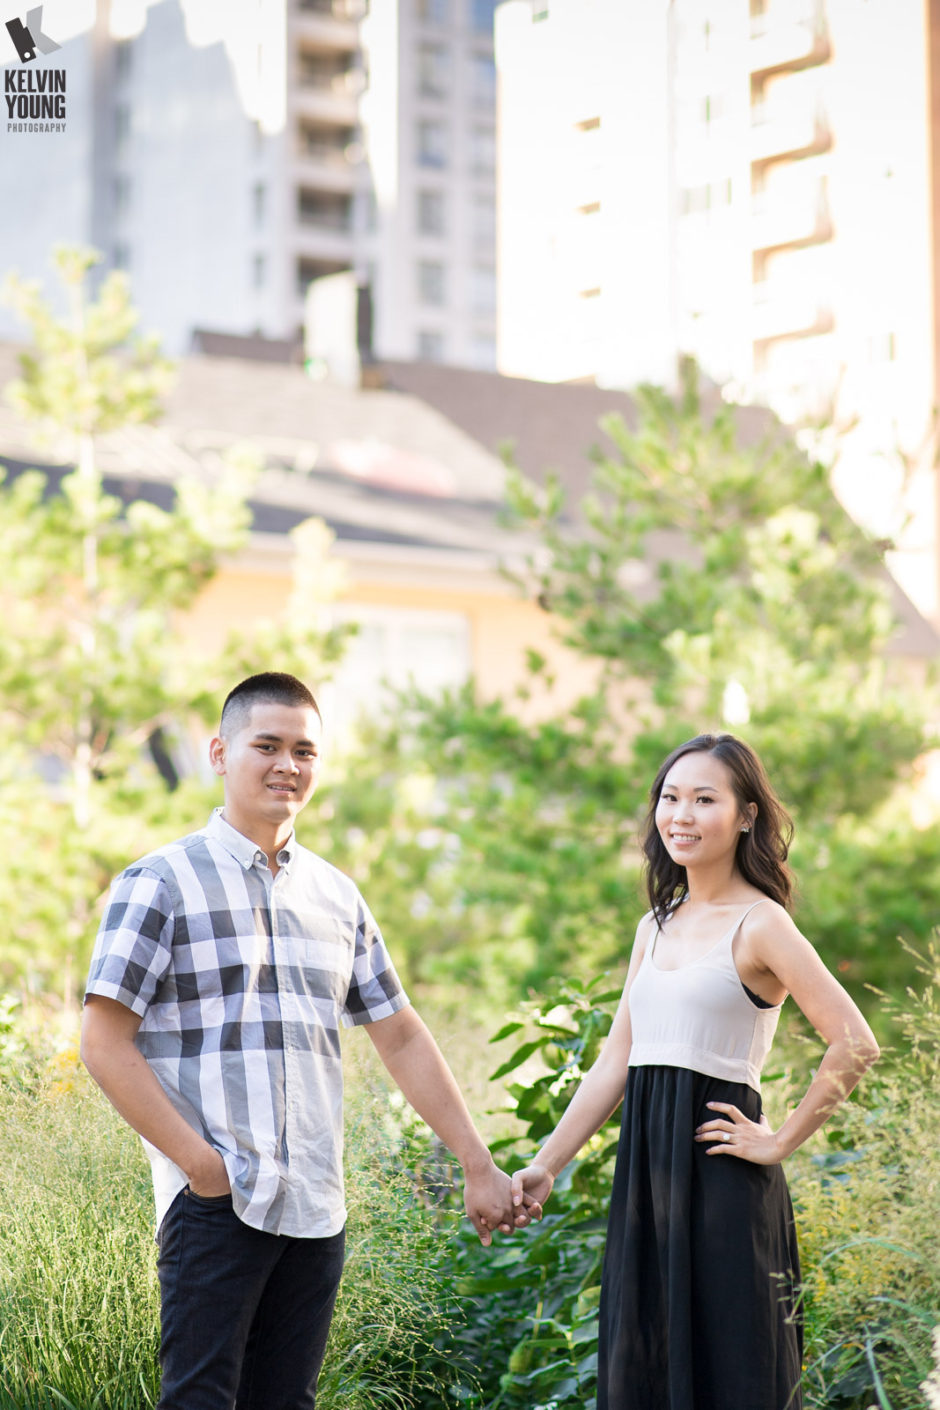 kelvin-young-photography_lydia-kevin-toronto-engagement-photos_004